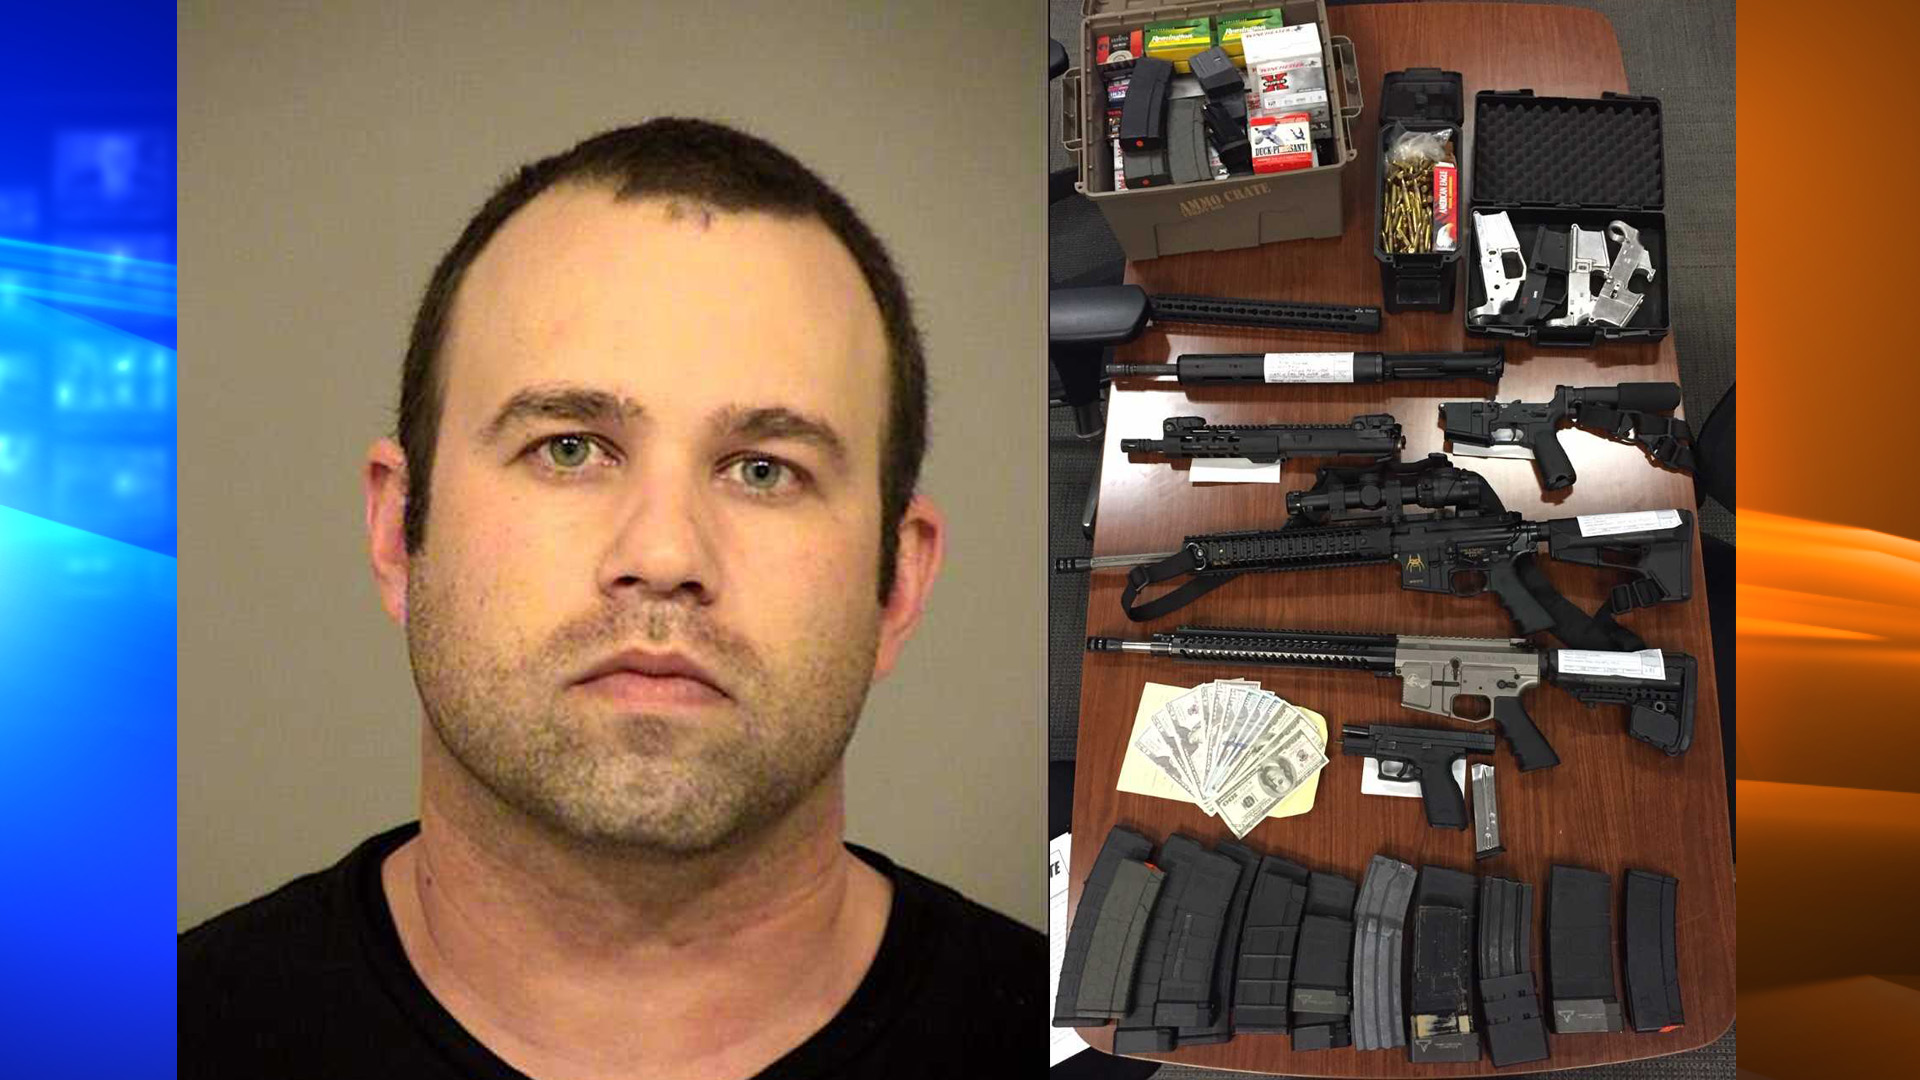 Bijan Hooshyar is seen in this booking photo from the Ventura County Sheriff's Office, along with multiple unregistered firearms, ammunition, and counterfeit cash.